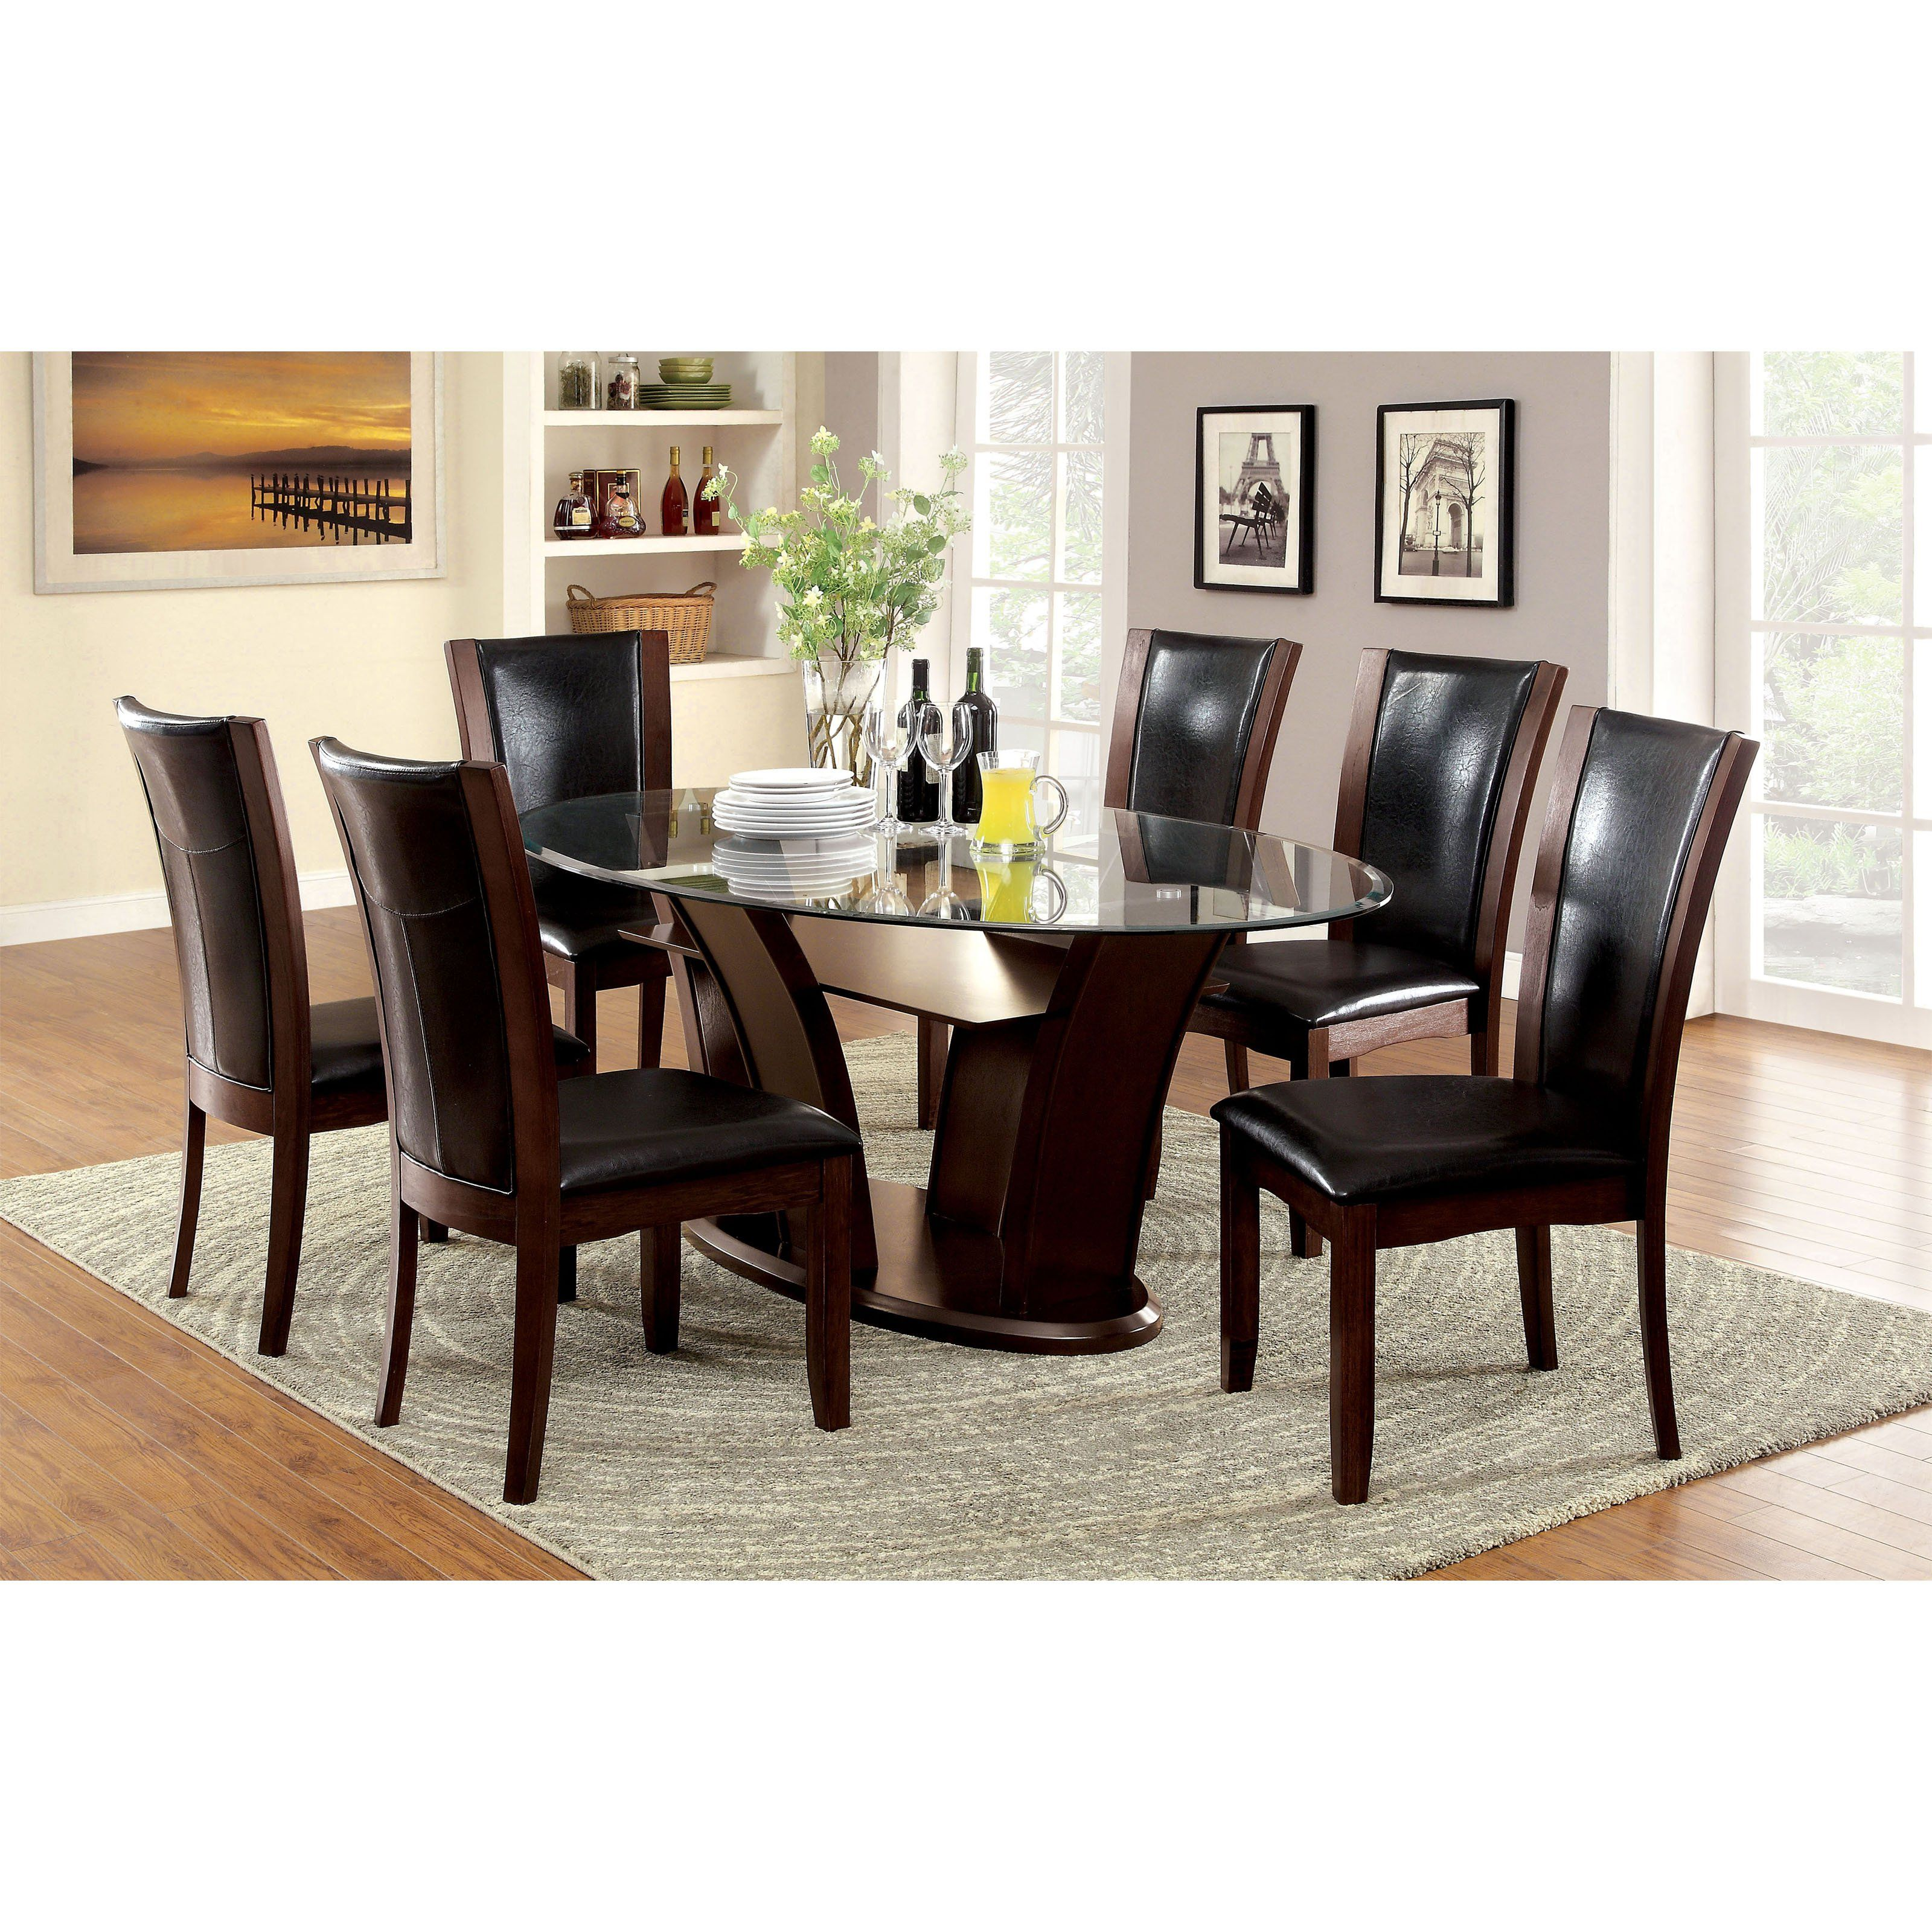 Furniture of America Lavelle 7 Piece Tempered